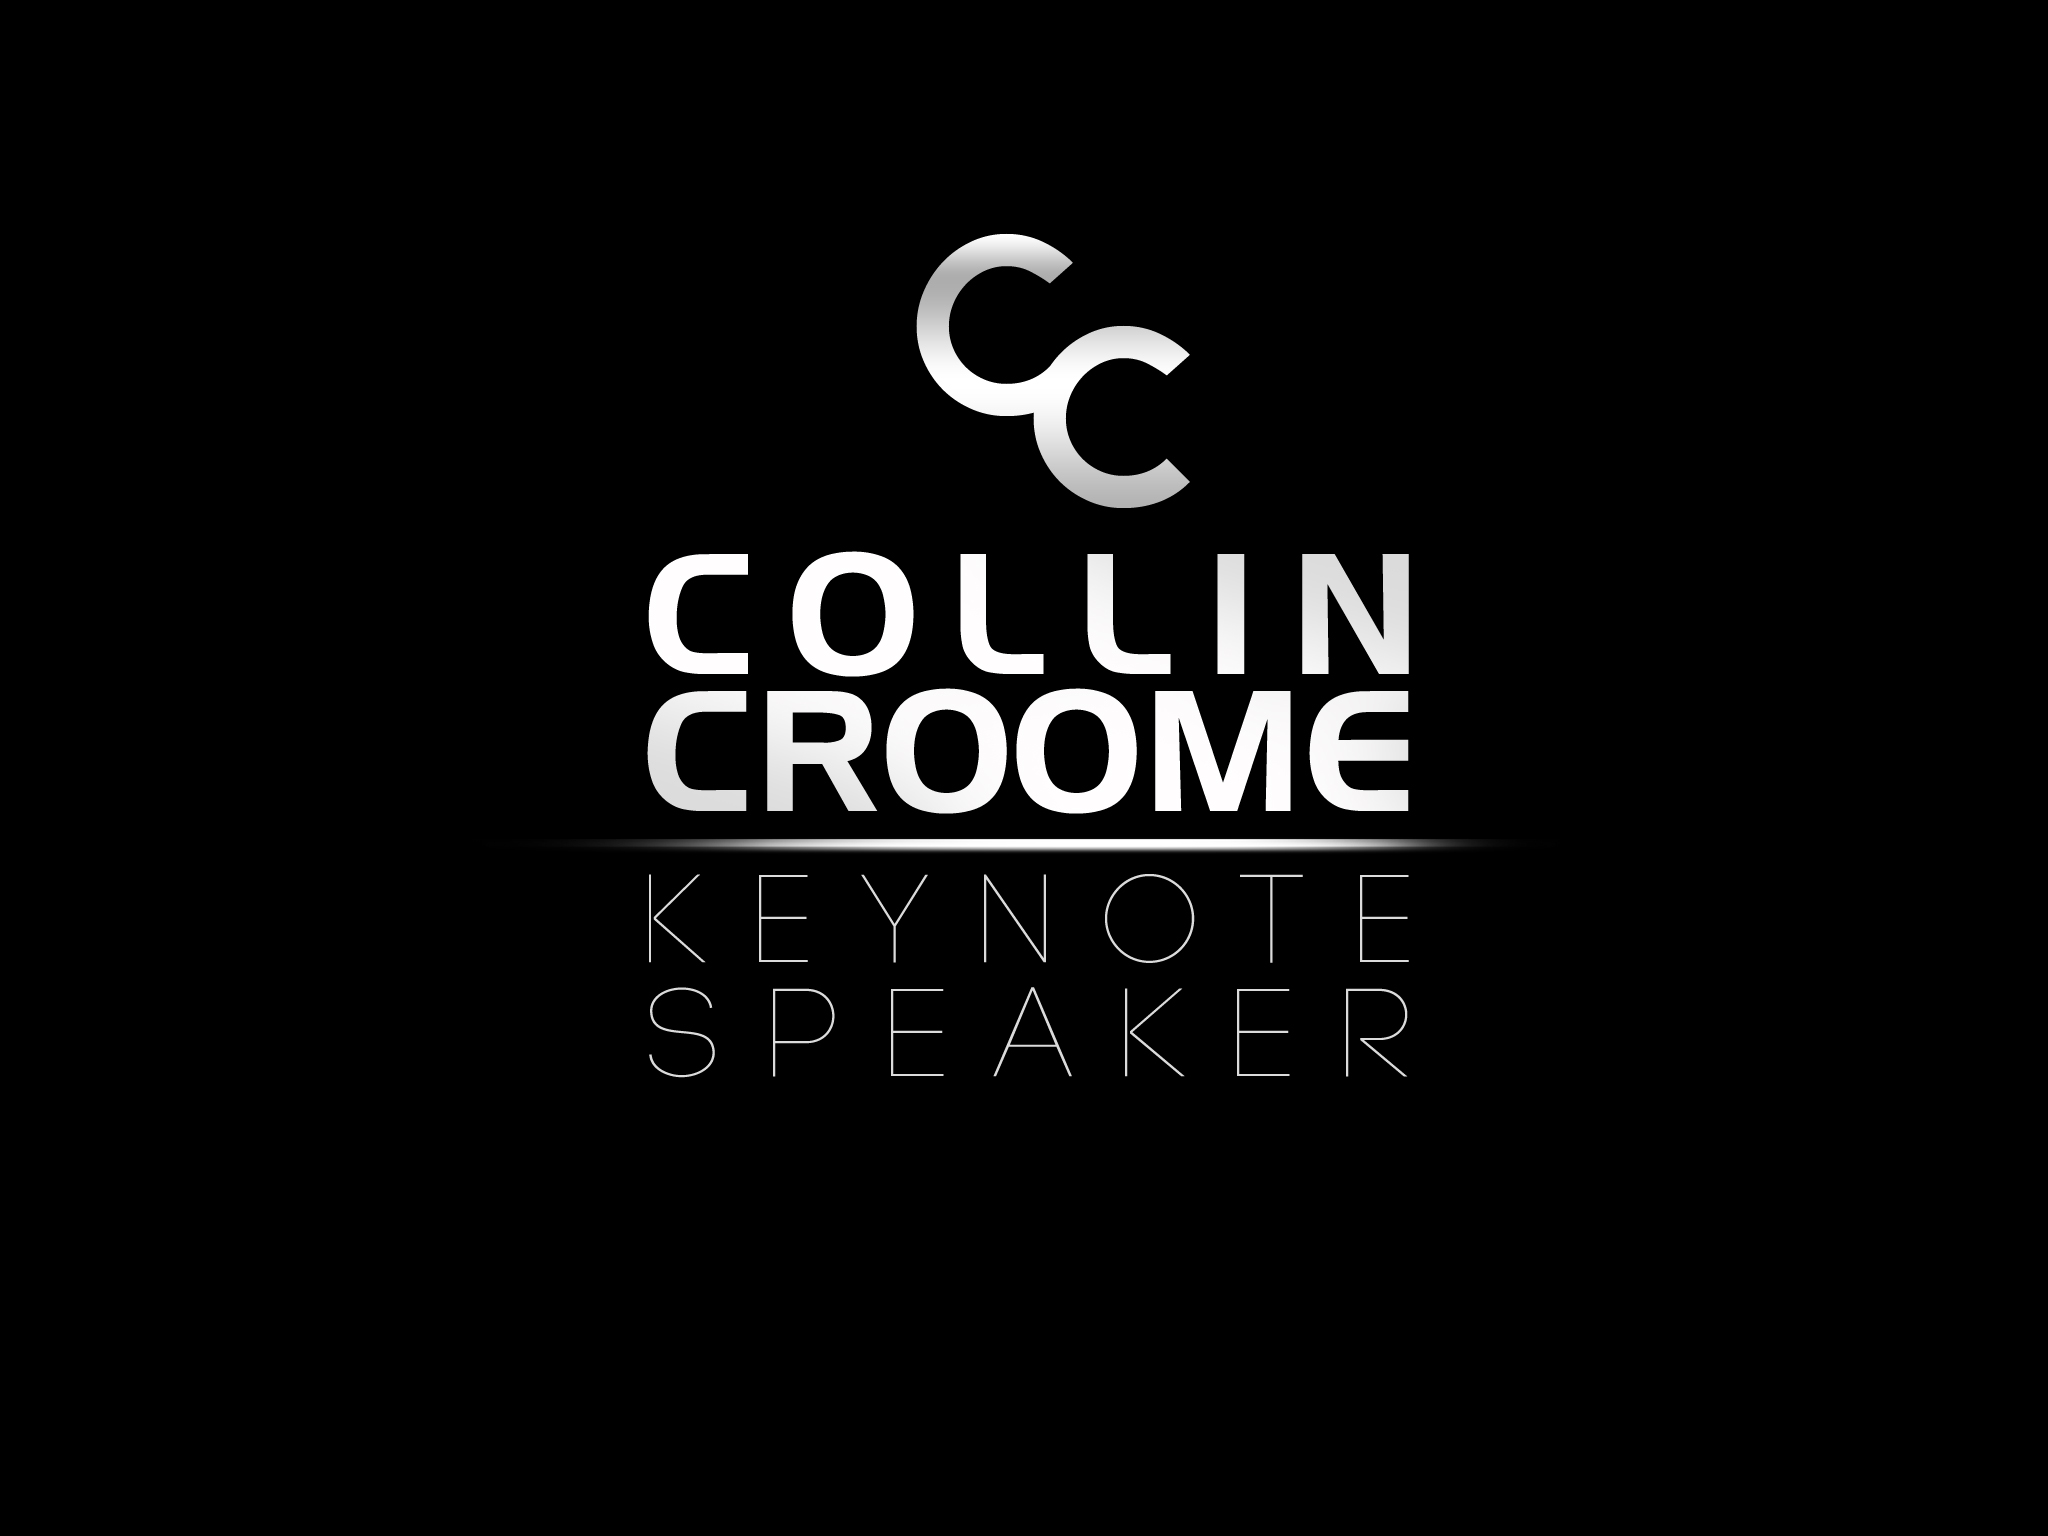 Logo Design by Jan Chua - Entry No. 199 in the Logo Design Contest Modern Logo Design for Collin Croome.